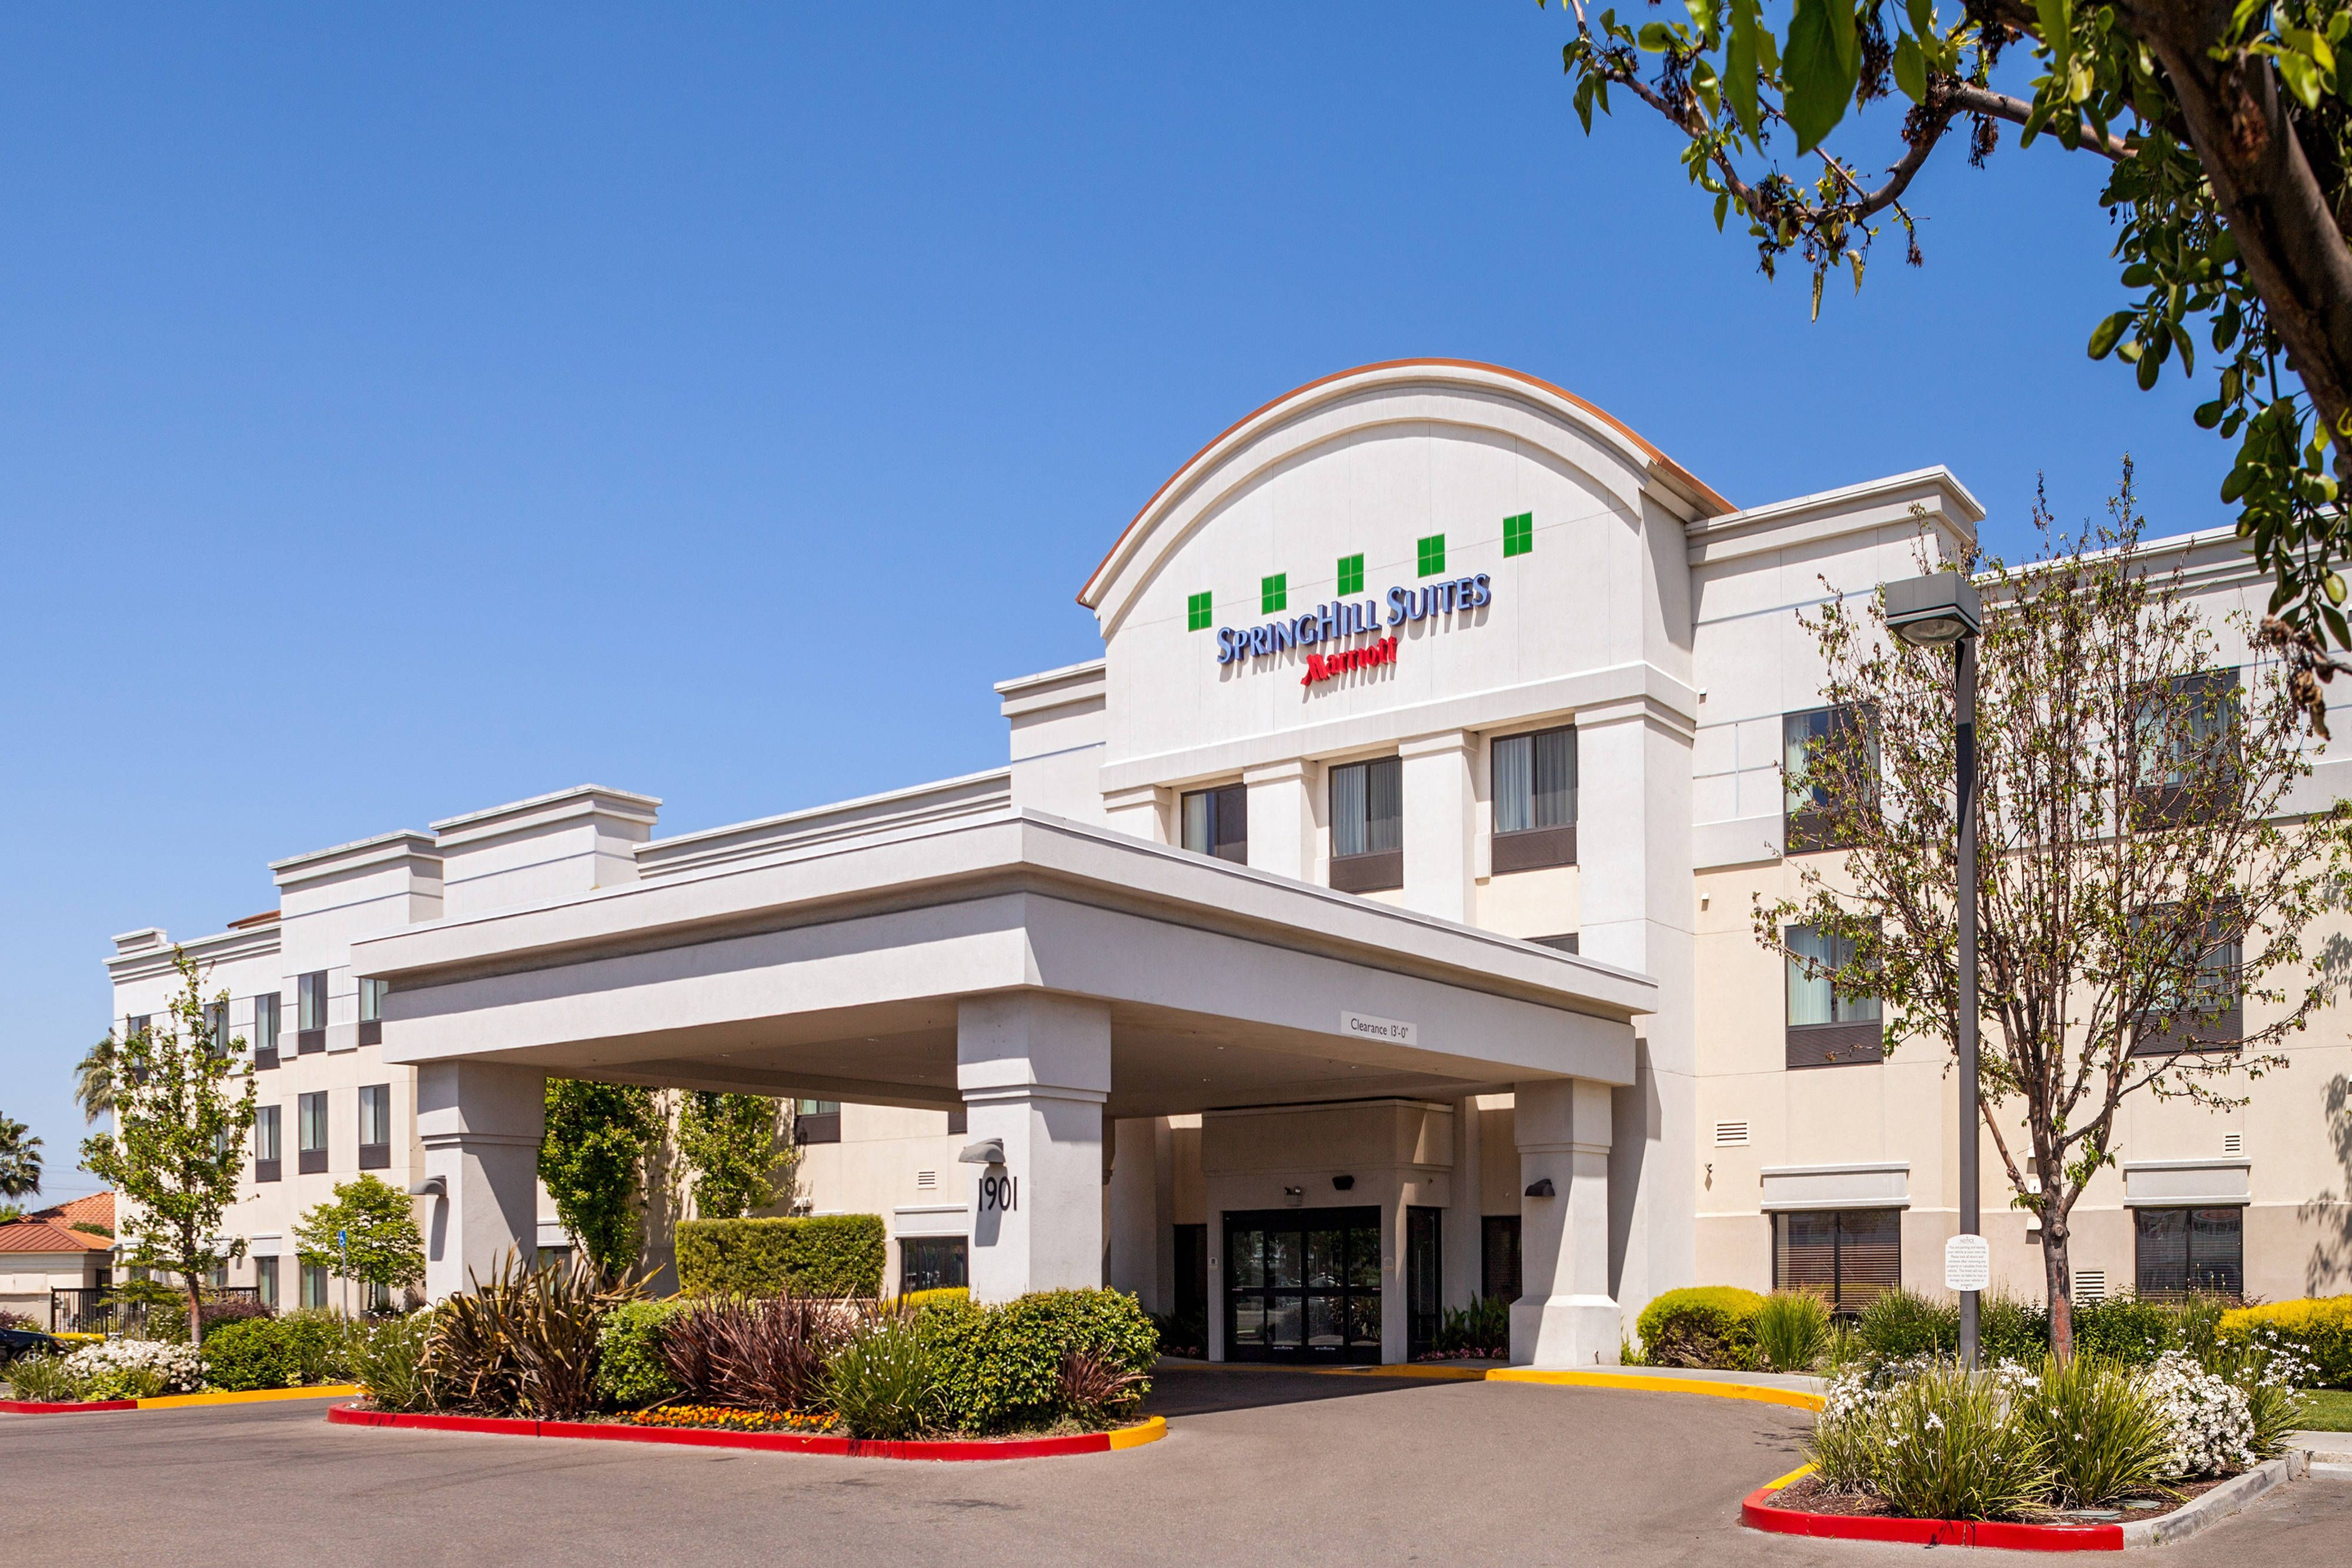 Springhill Suites Modesto Entrance Comfort Guestroom Hotels Springhill Suites House Styles